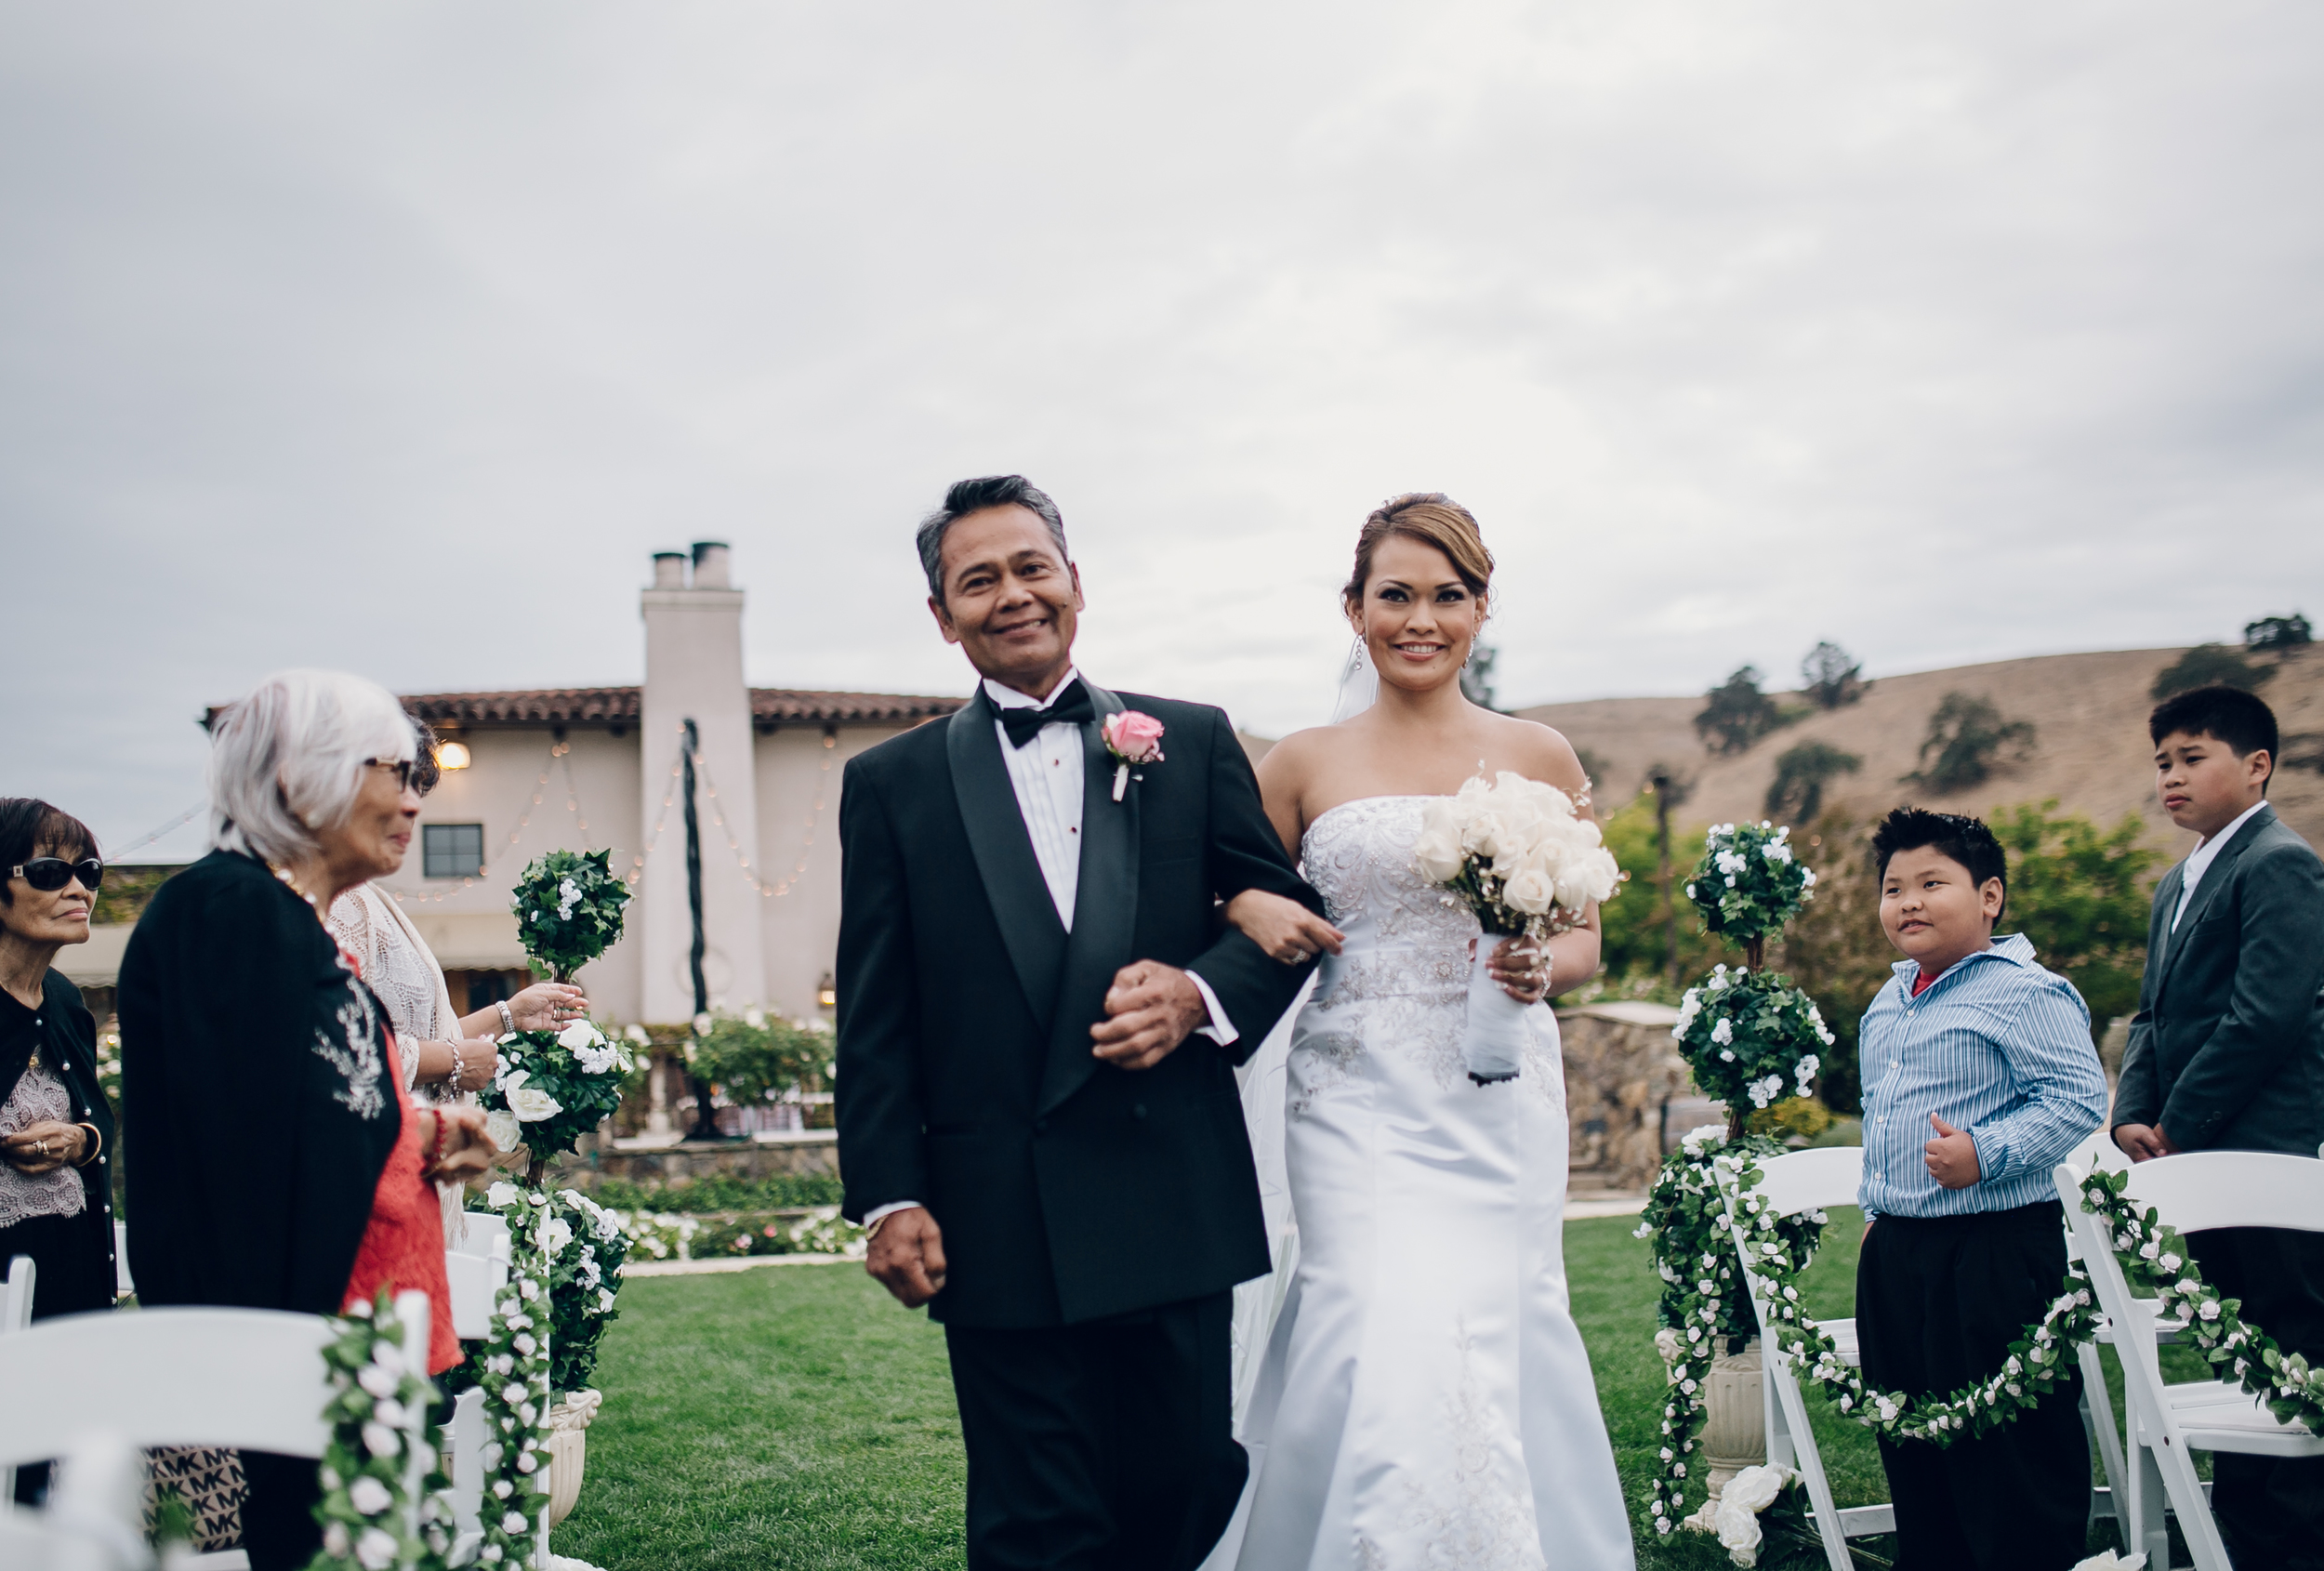 Shiela + Lester's Wedding 9-30-15 654.jpg